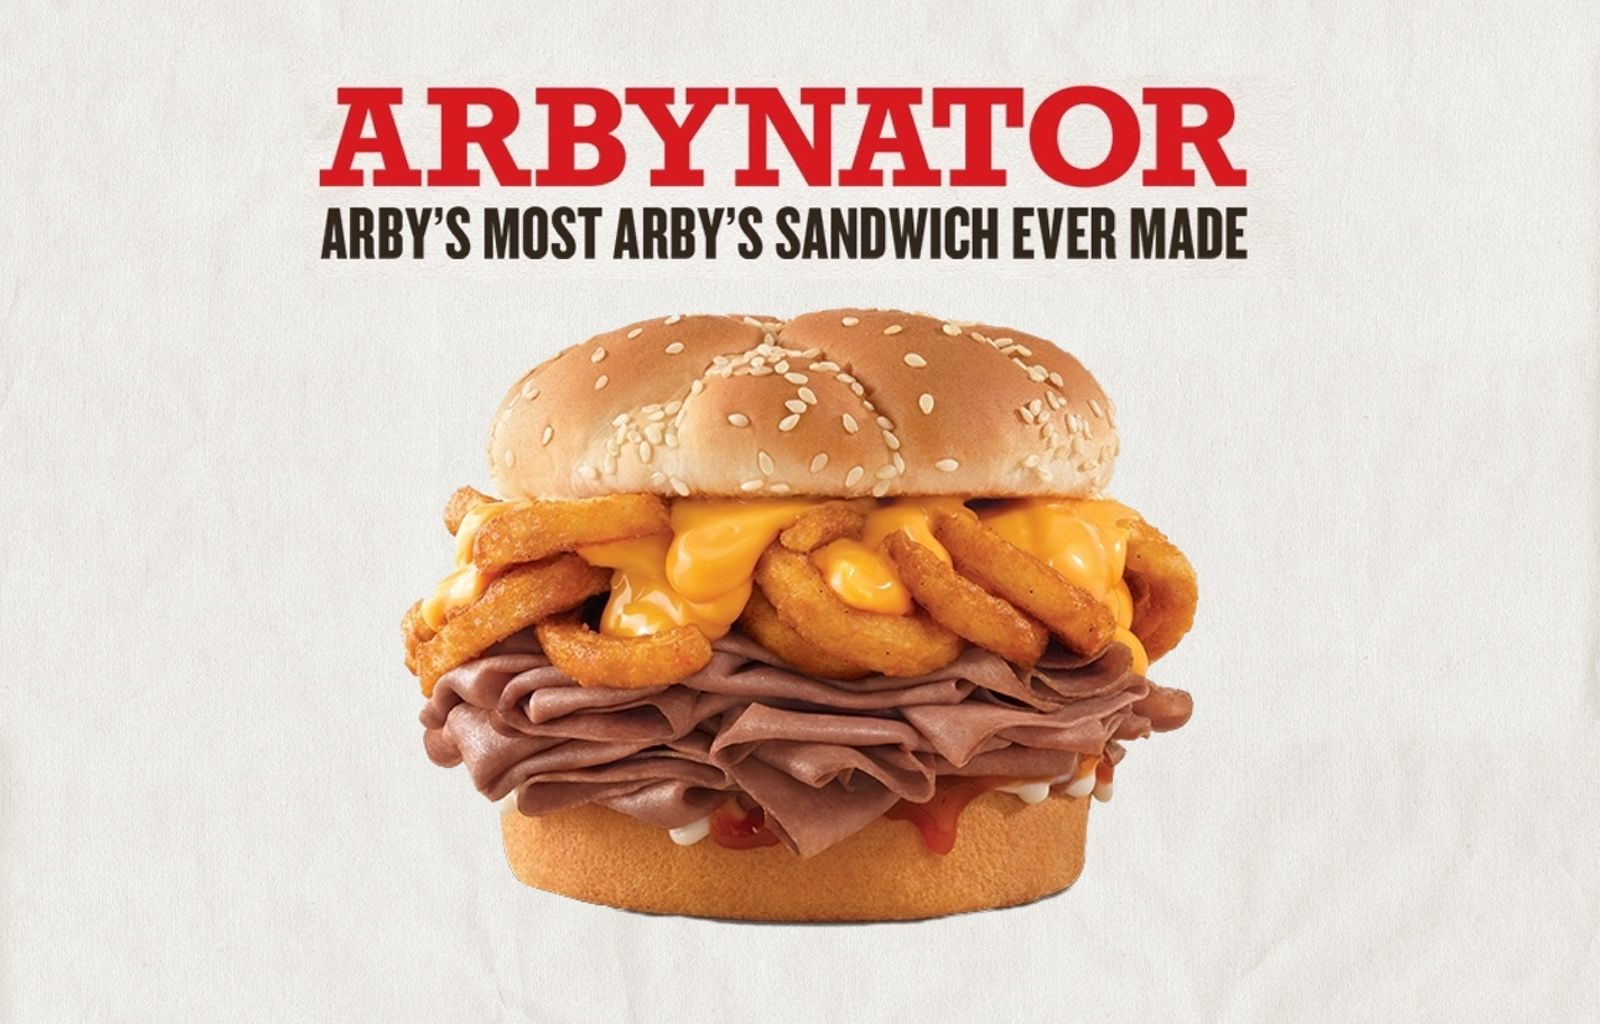 Arby's New Roast Beef Sandwich Is STUFFED With Curly Cheese Fries